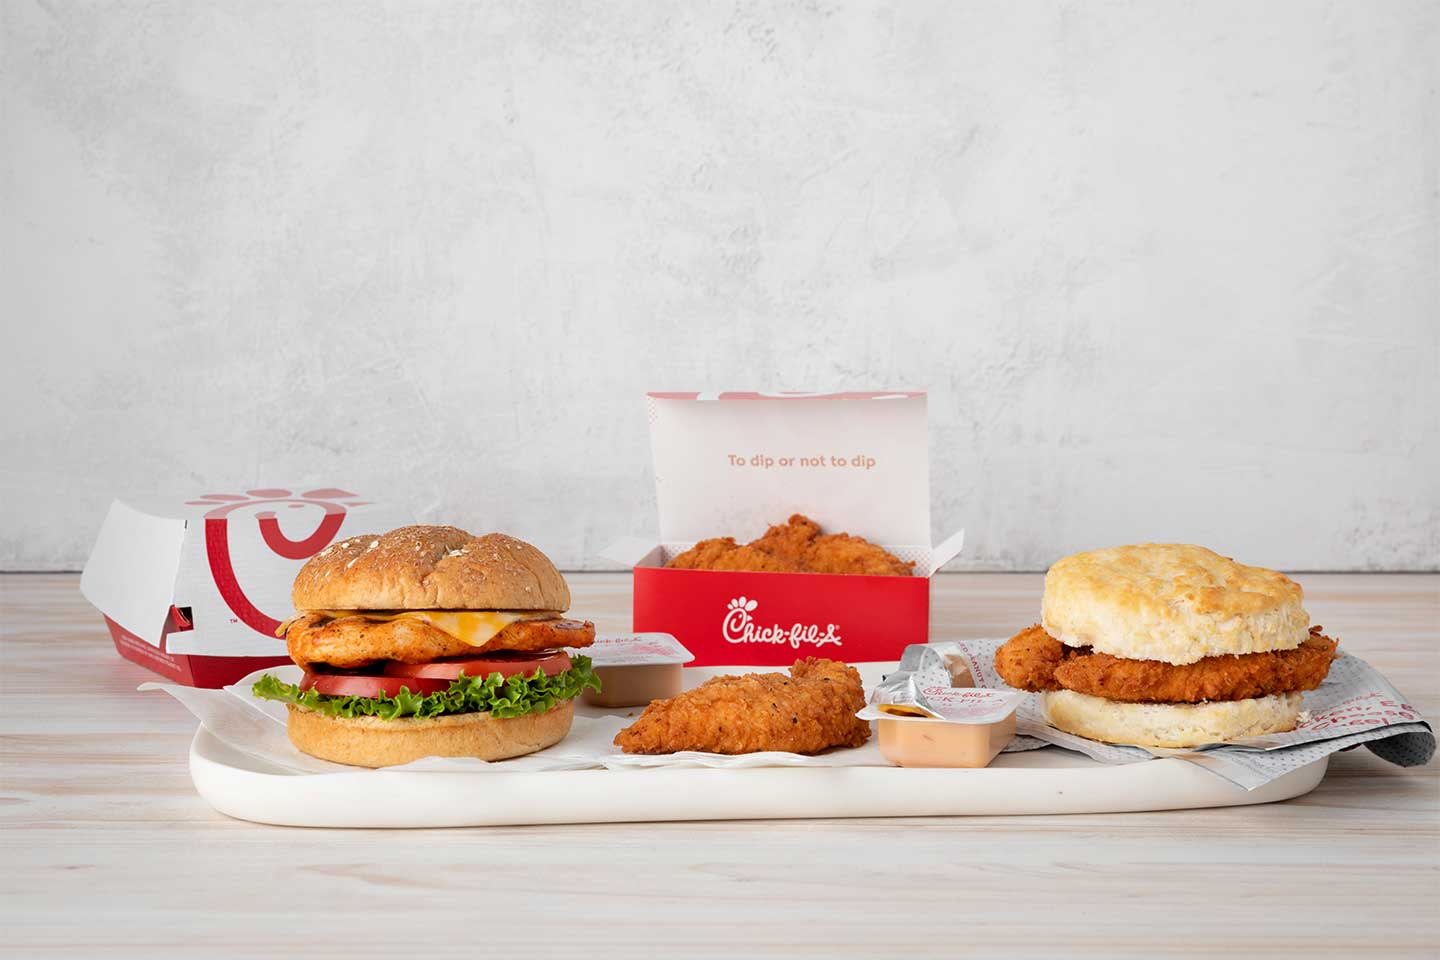 Chick-fil-A sandwiches and chicken box